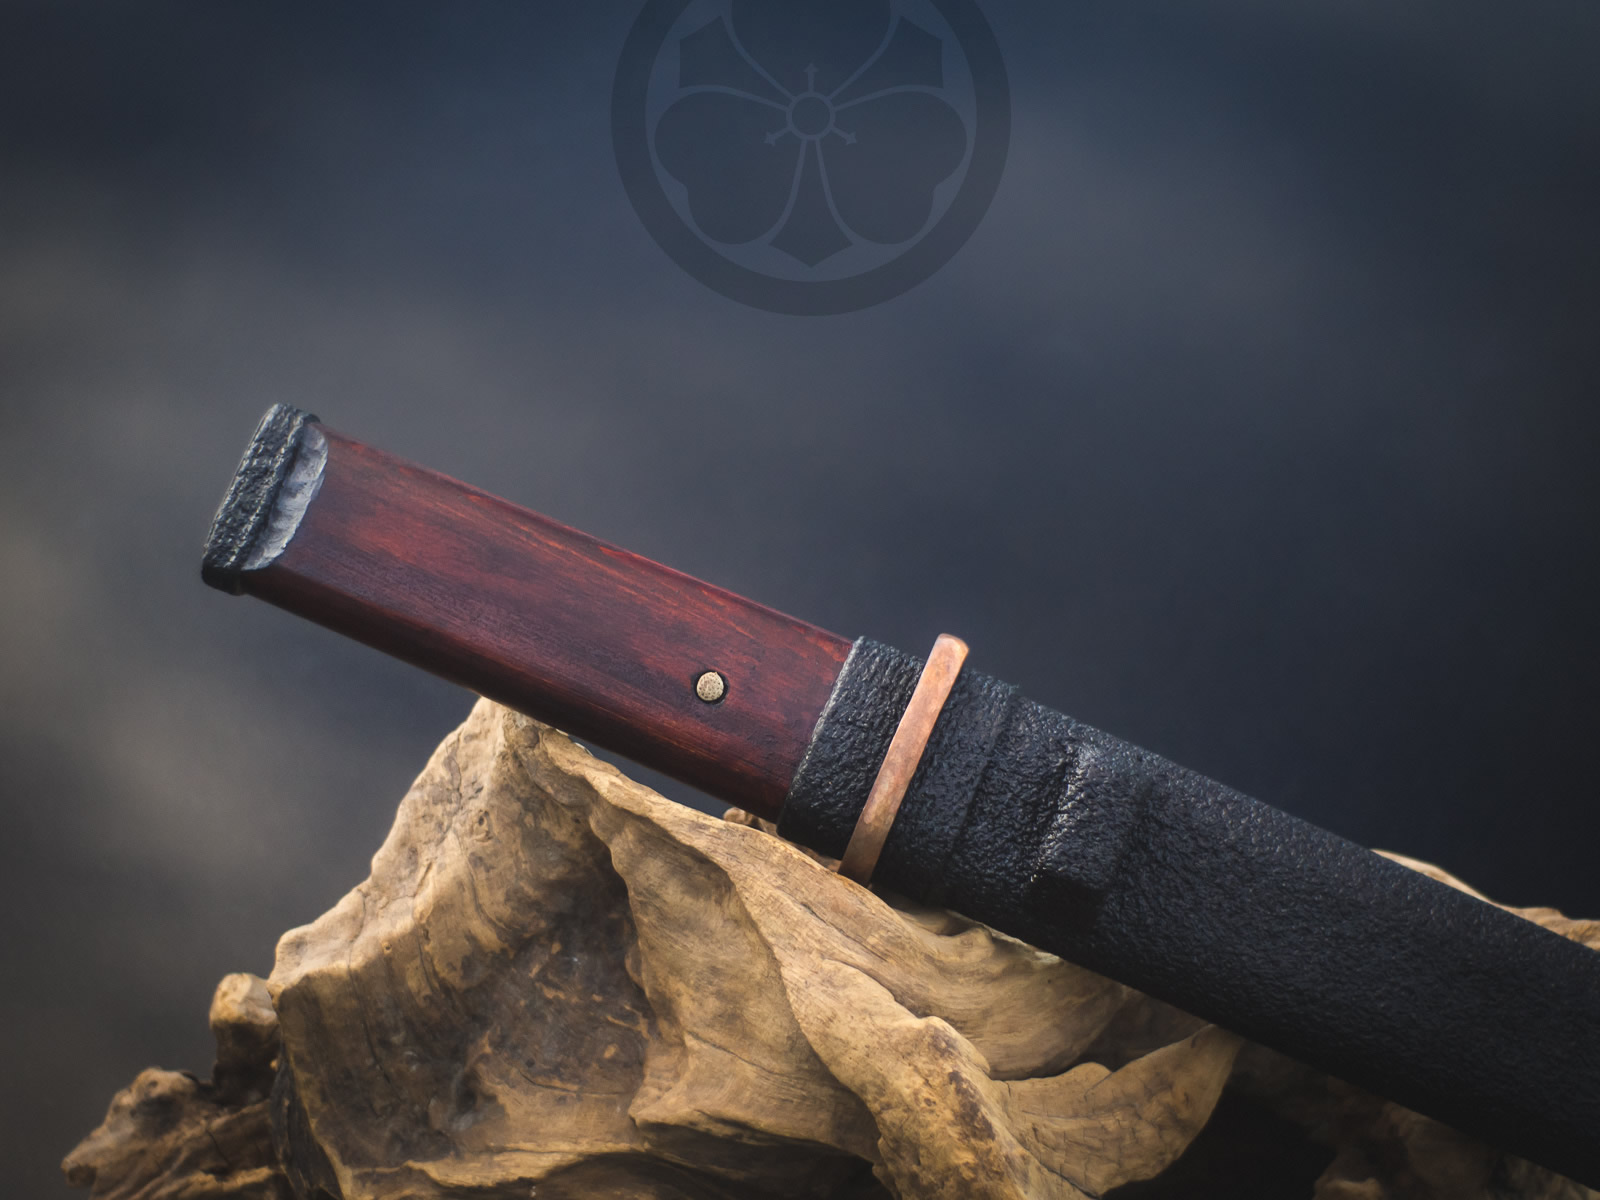 Island Blacksmith: Charcoal forged tanto from reclaimed files.